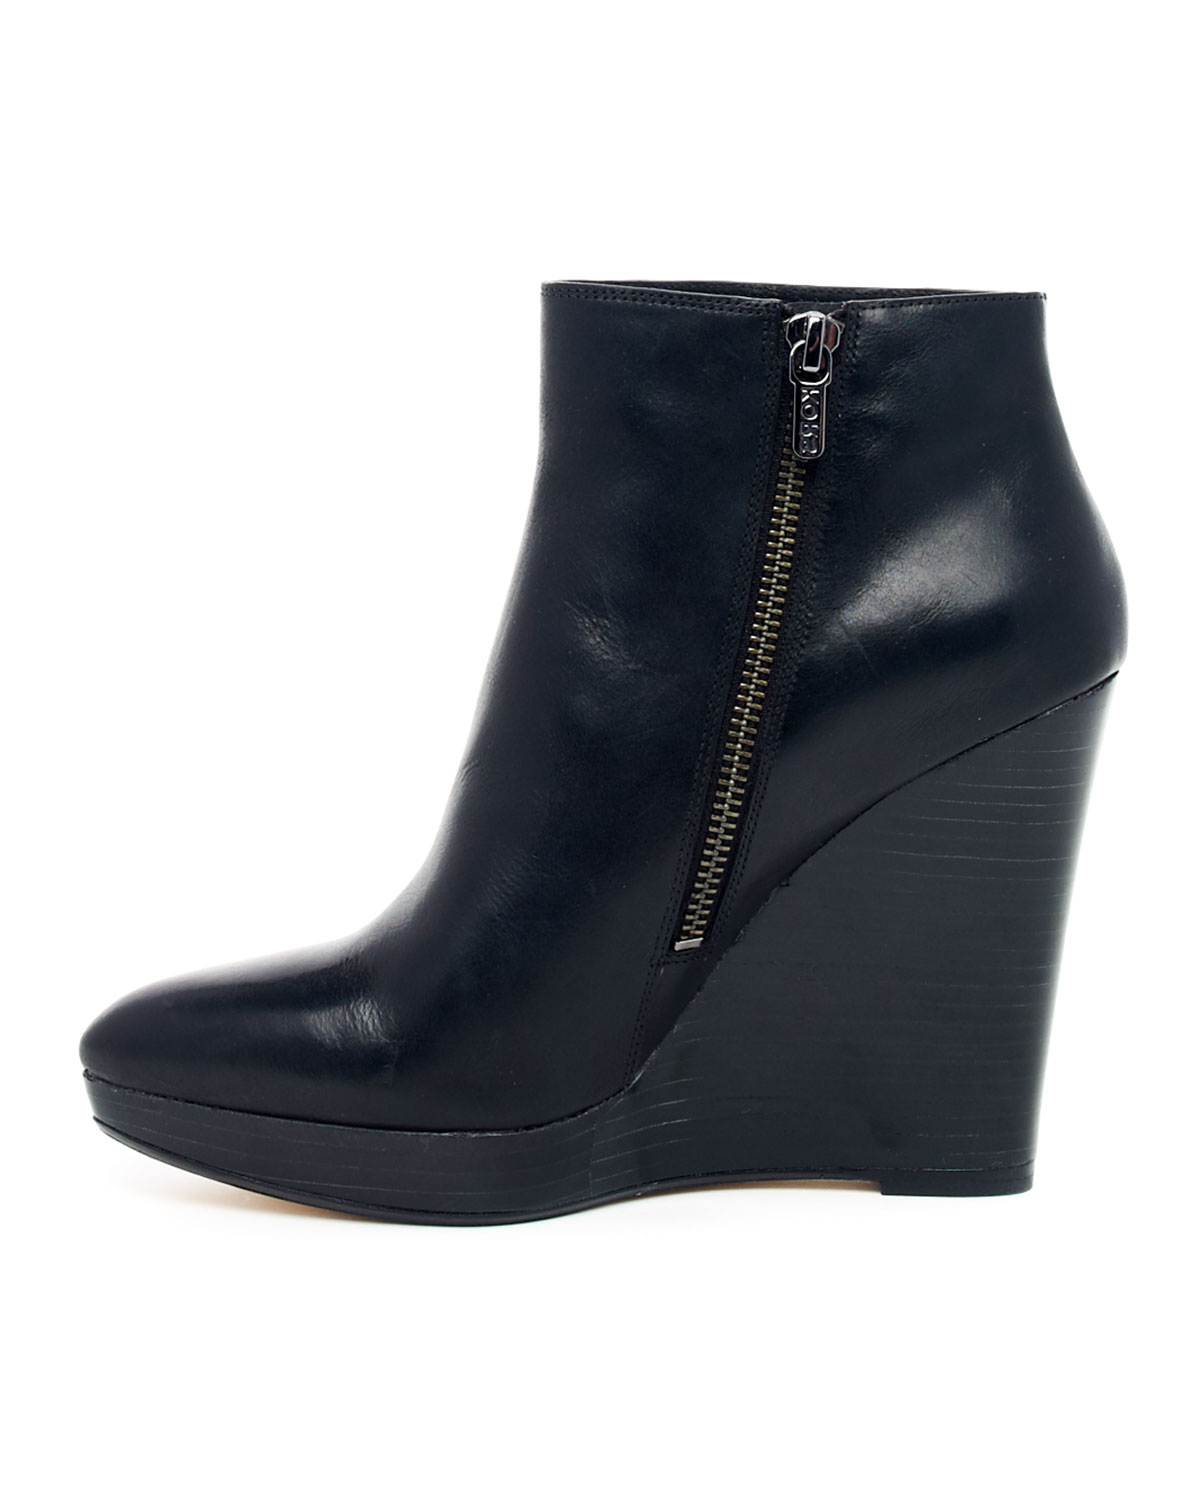 michael kors korsshailyn wedge ankle boot in black lyst